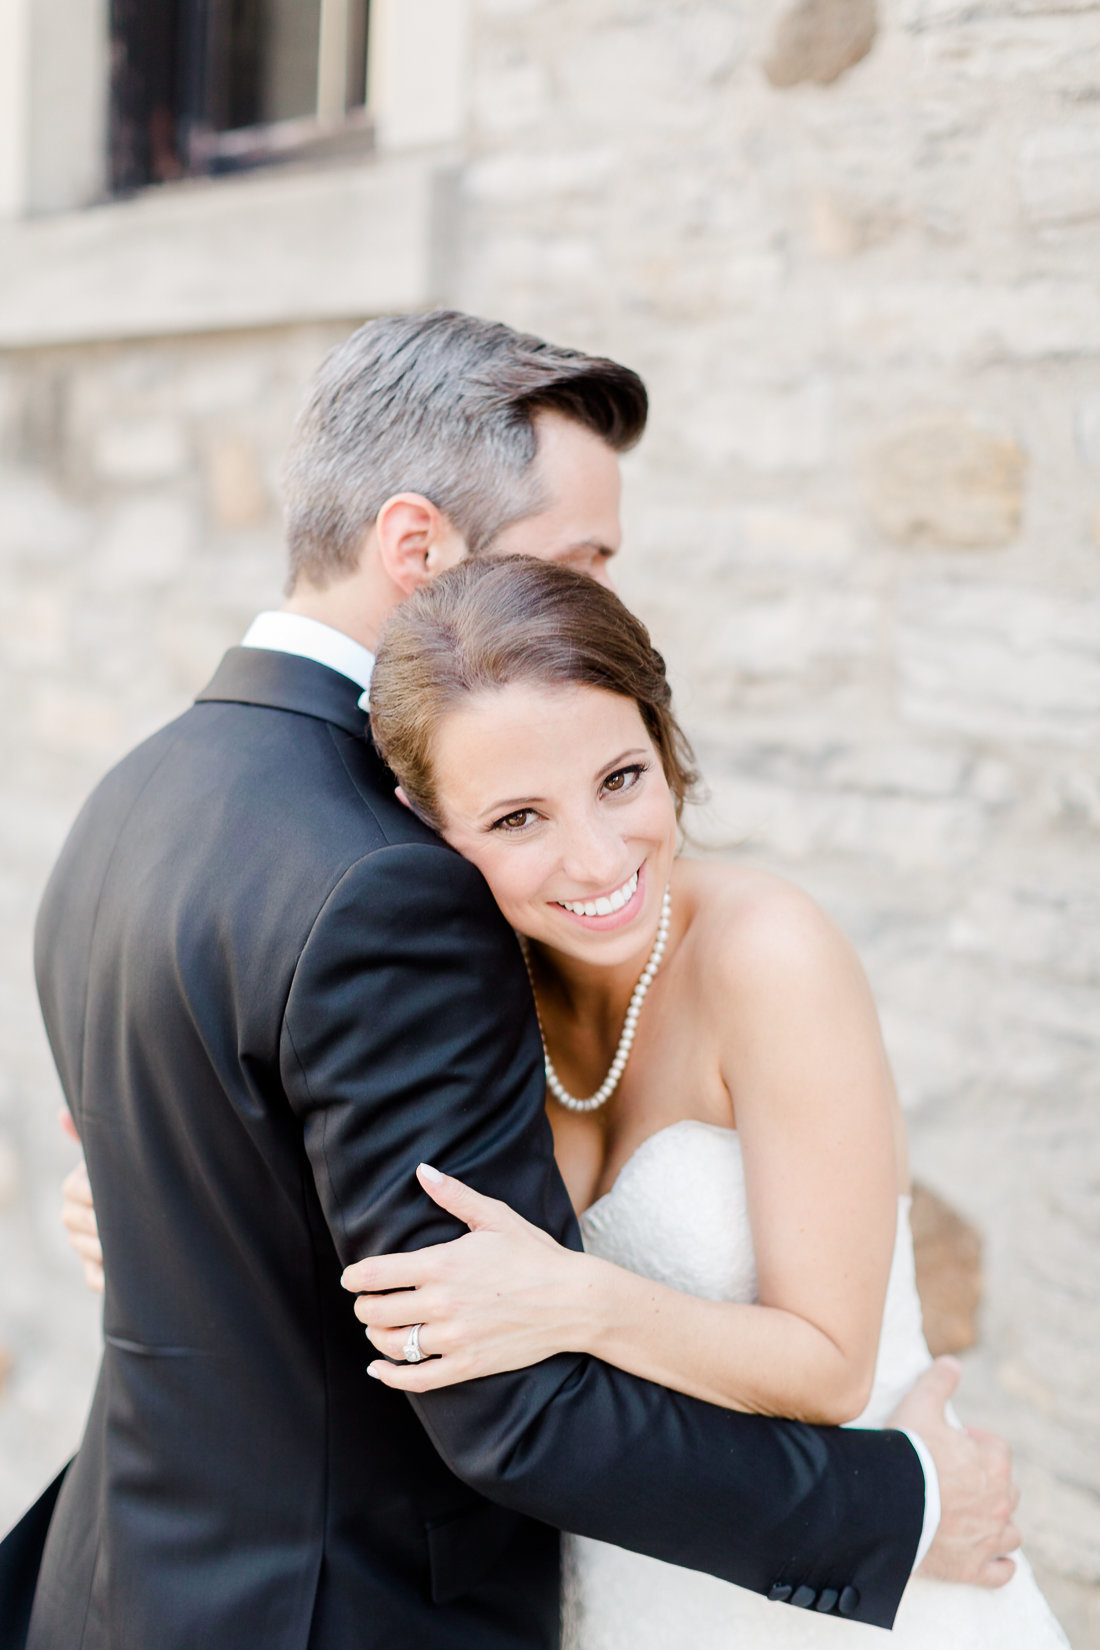 photographe-mariage-auberge-saint-gabriel-lisa-renault-photographie-montreal-wedding-photographer-78